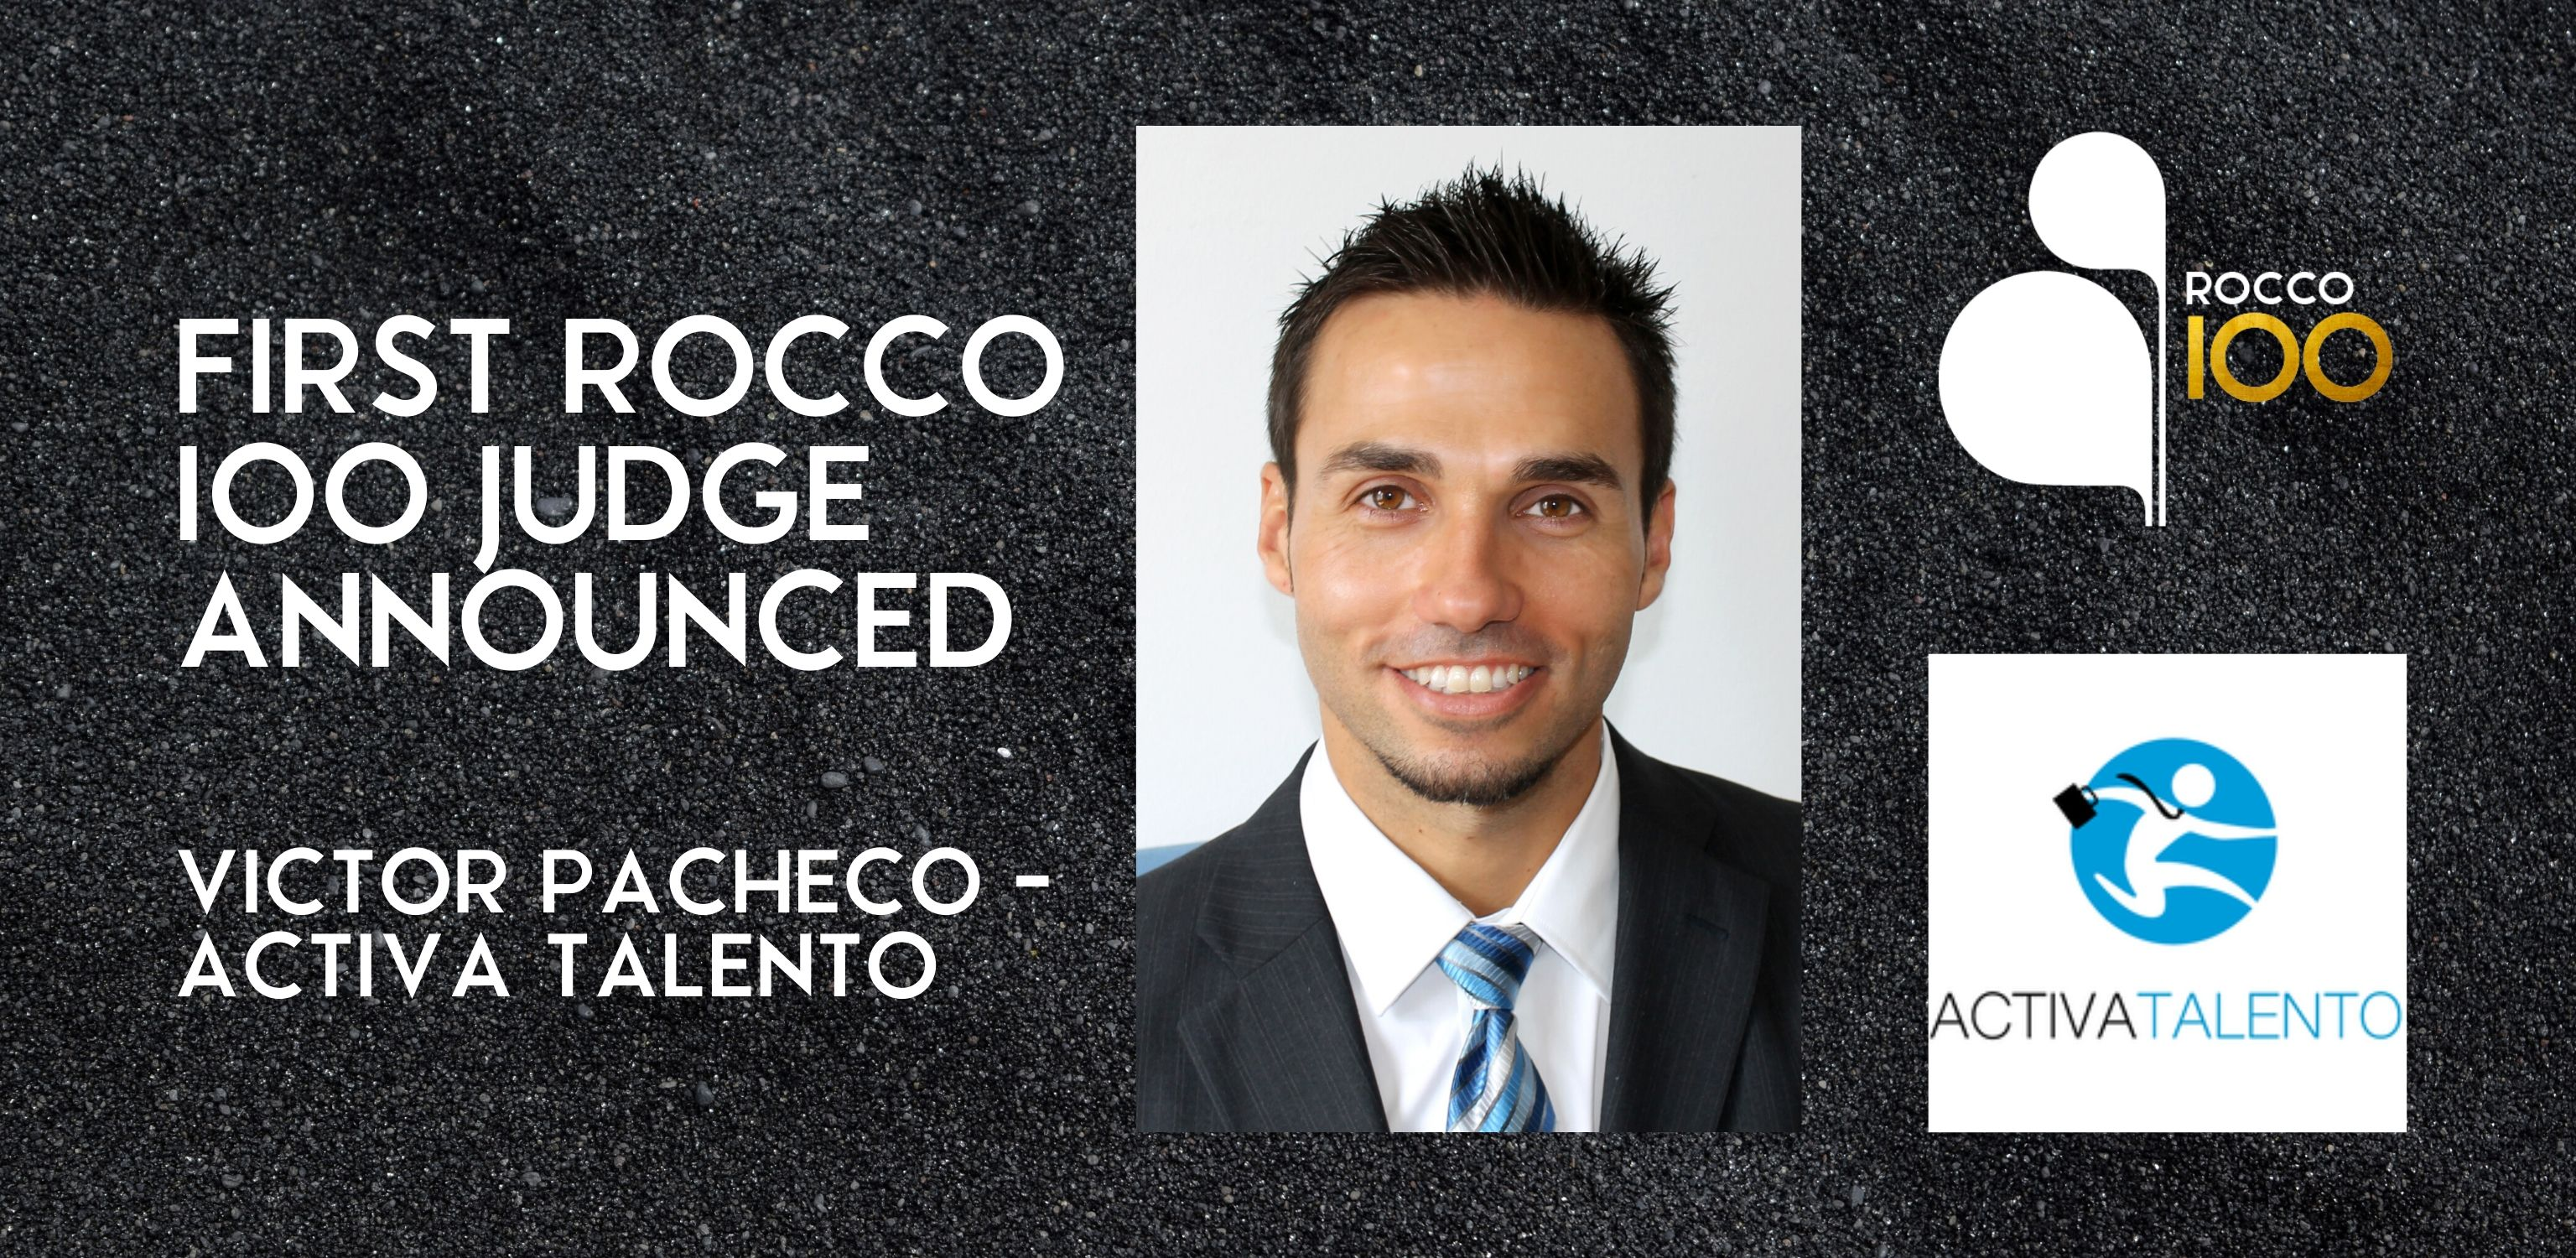 First ROCCO IOO Judge Announced